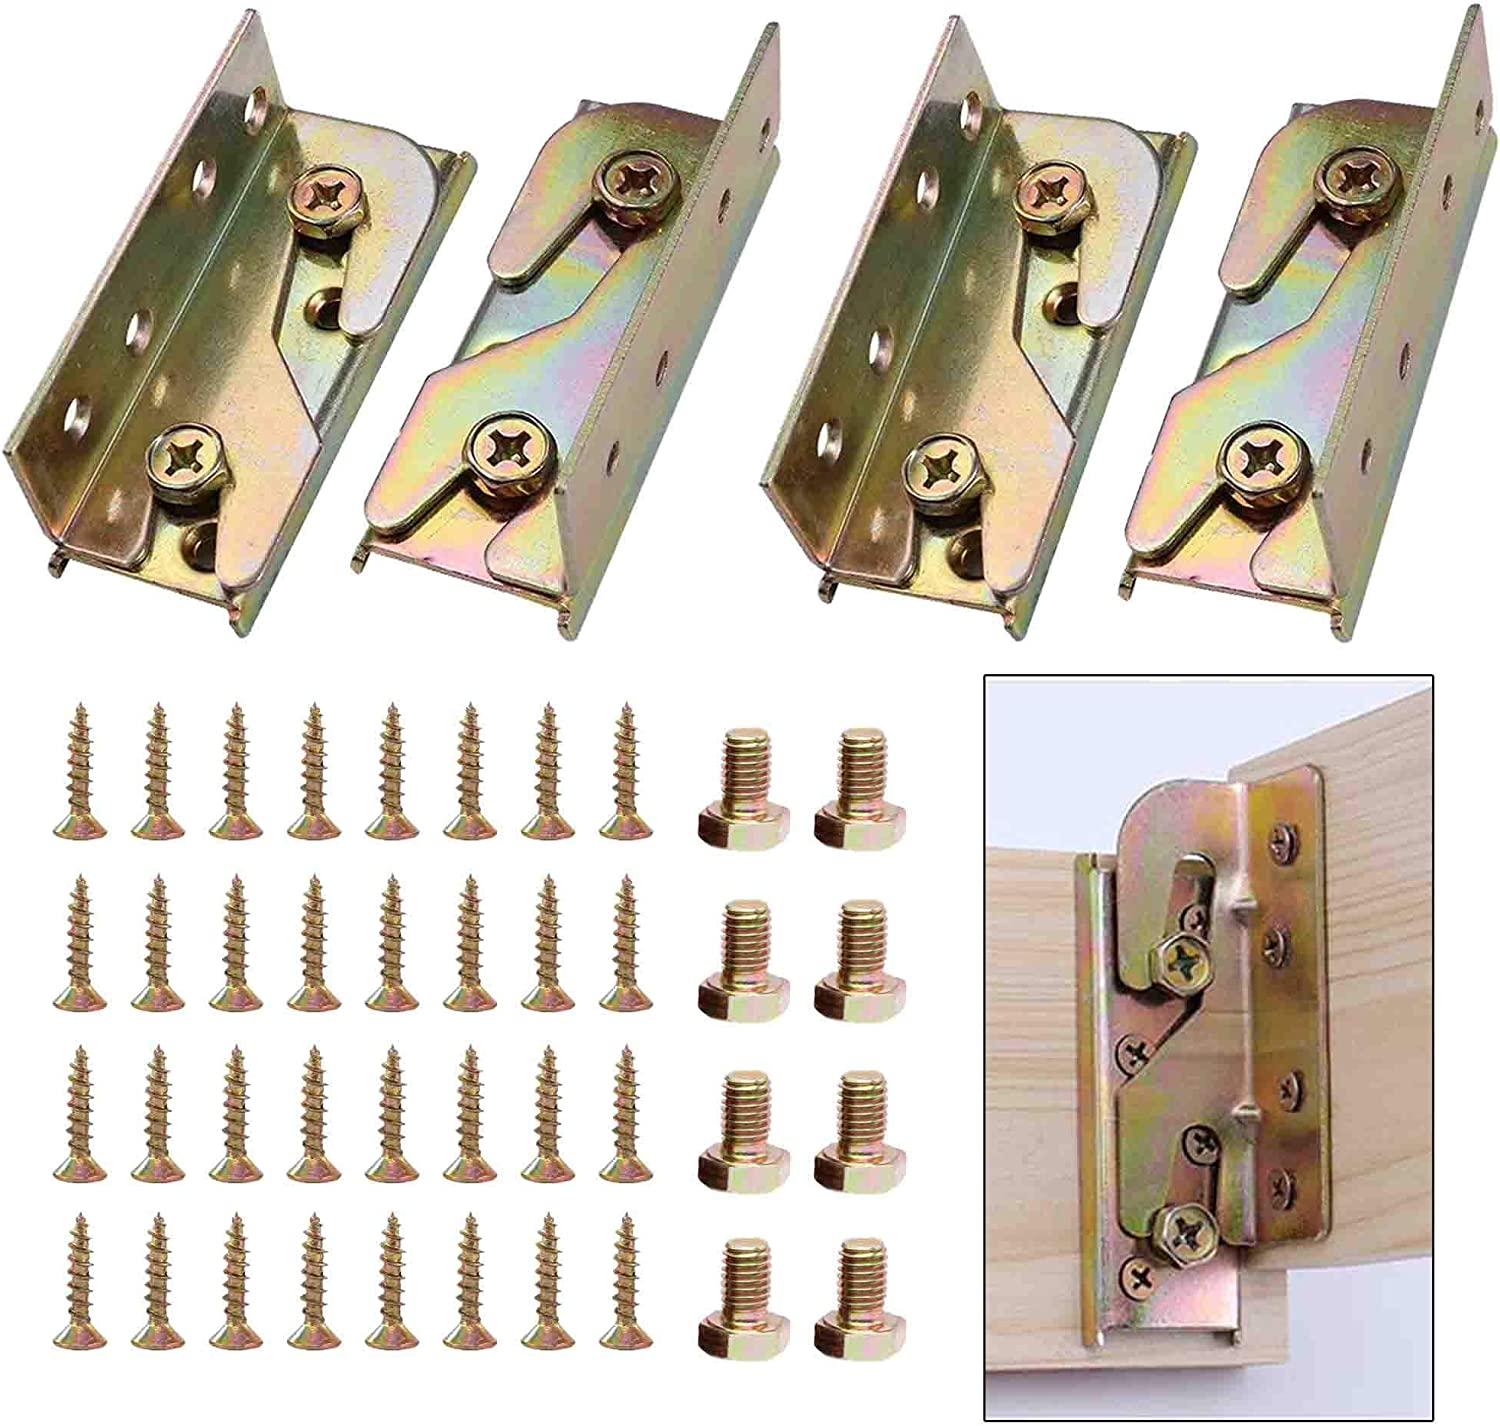 4 Sets Bed Rail Fittings Bed Rail Brackets, Heavy Duty Mental No-Mortise Bed Rail Hinges Frame Connector, Rust-Proof Wood Bed Rail Brackets With Mounting Screws